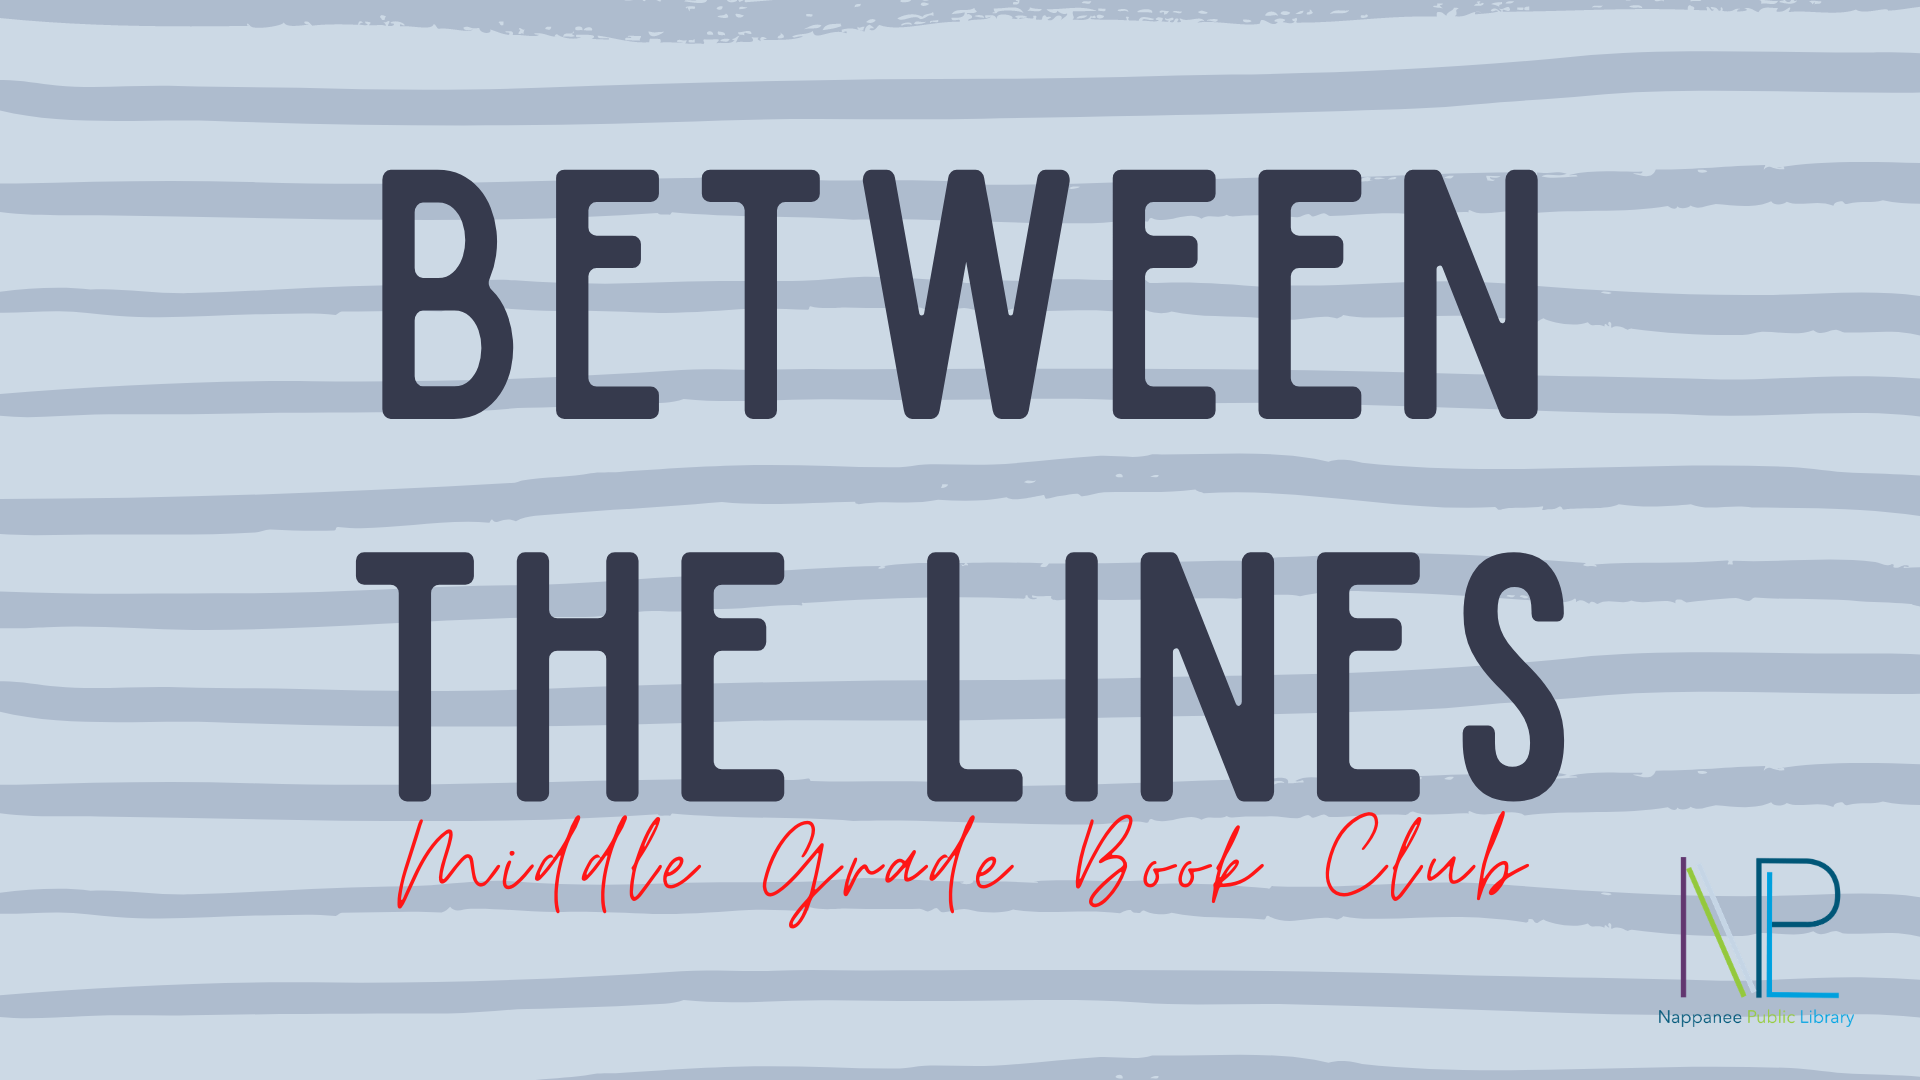 Between the Lines